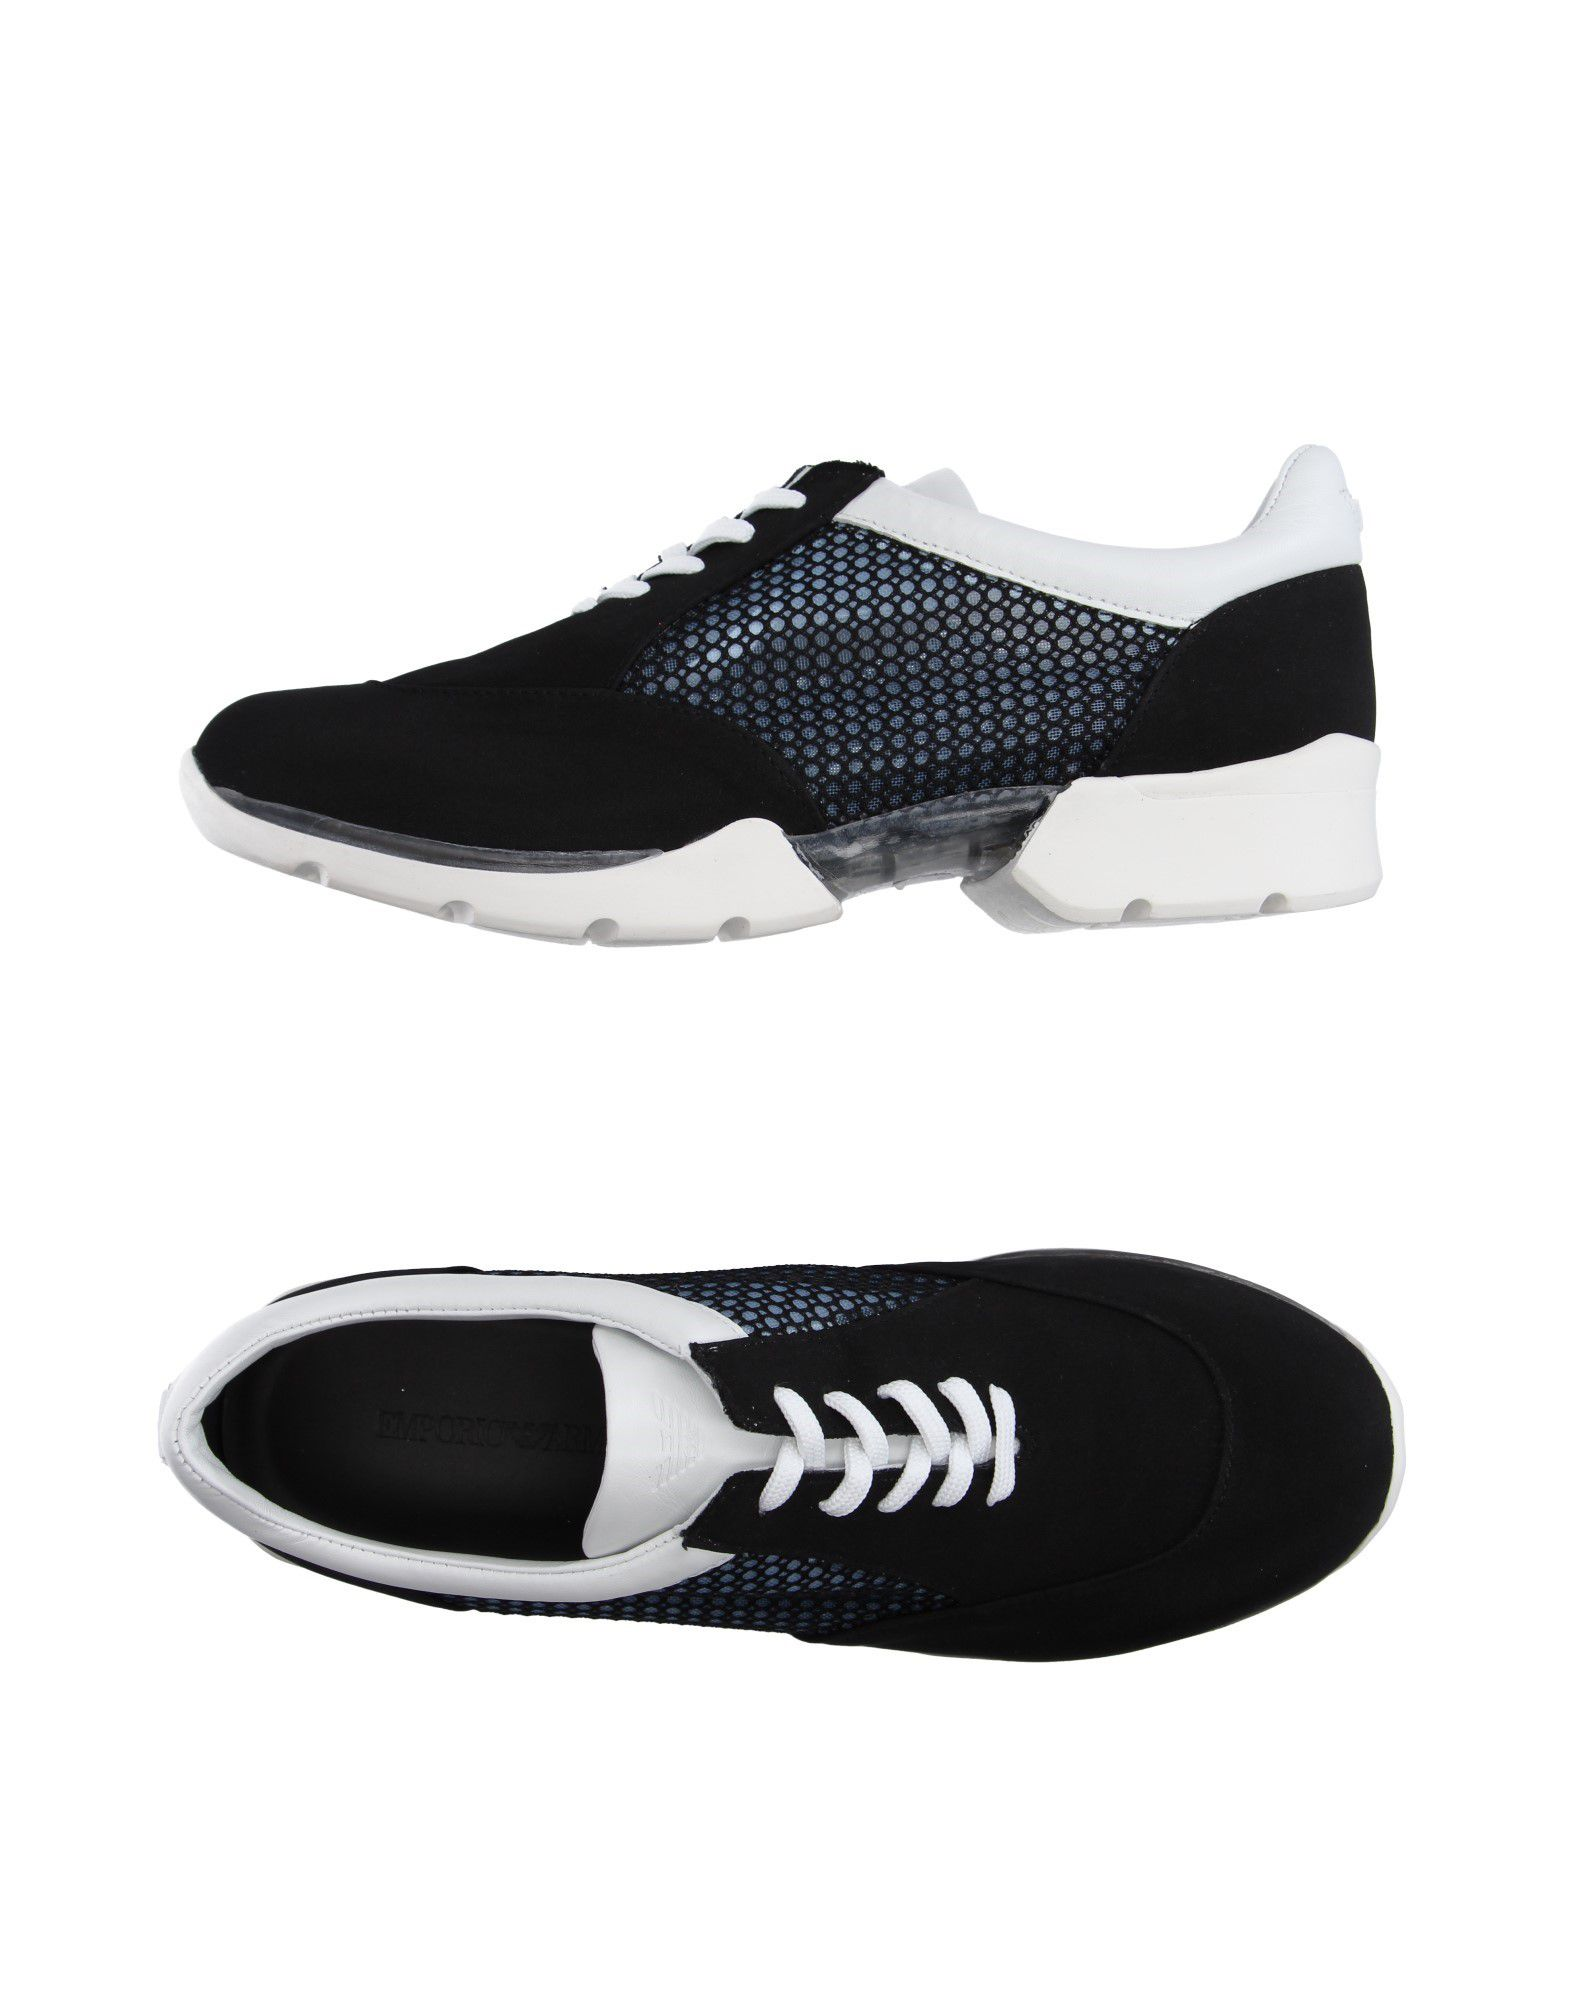 Emporio Armani Sneakers - Women Emporio Armani Sneakers - online on  Canada - Sneakers 11156325RB eb1ced